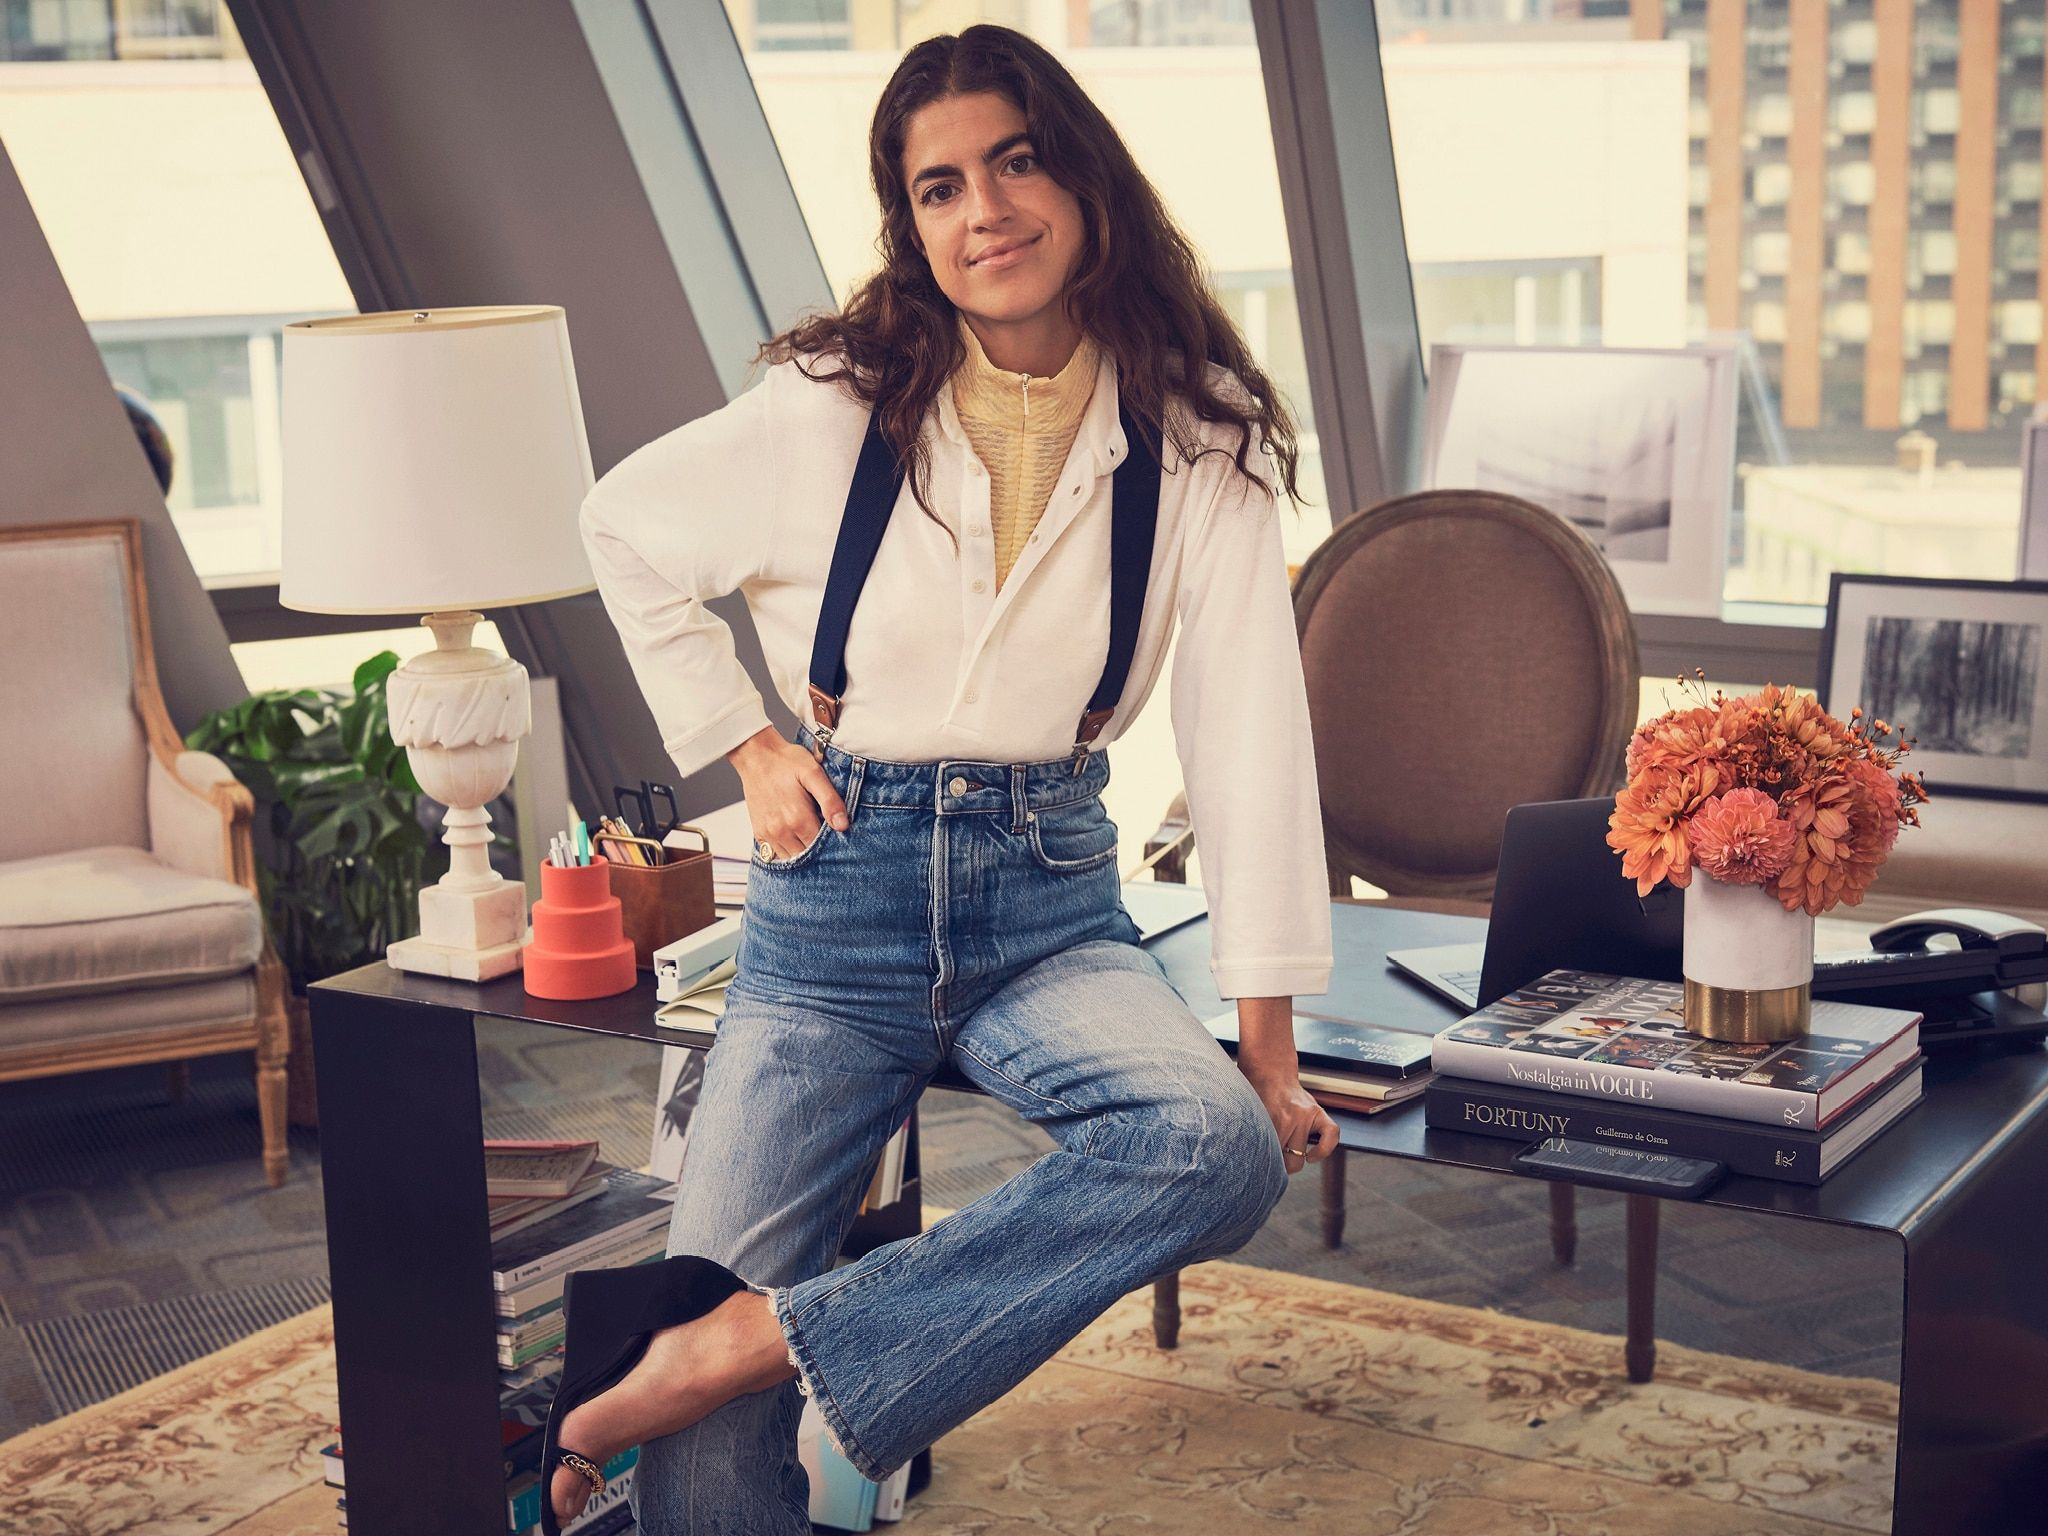 leandra-medine-x-mango-faded-relaxed-jeans-look-fw19-ad-campaign